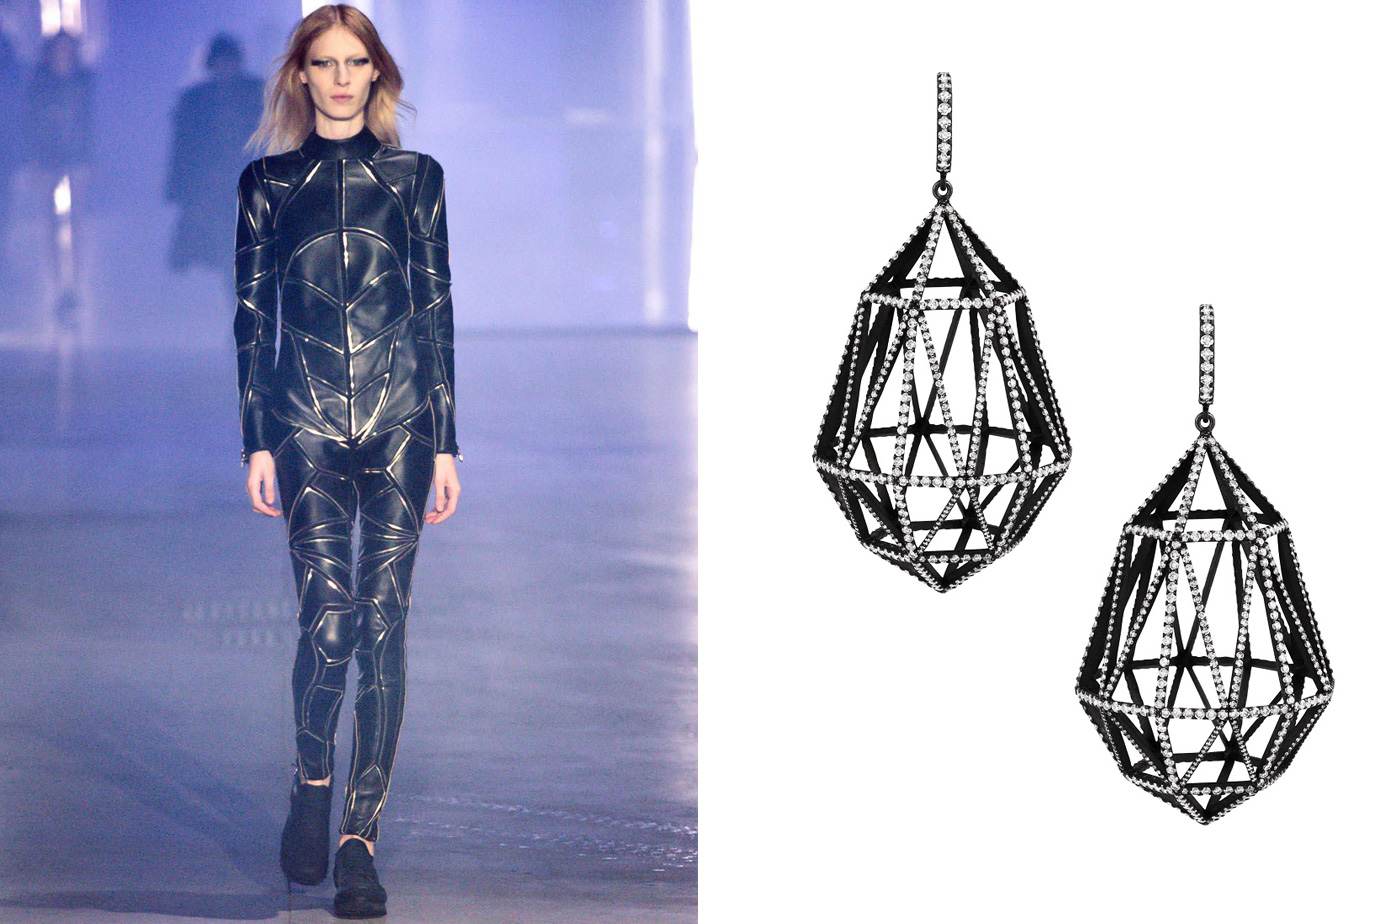 Philipp Plein and NUUN Briolette Earrings from Johara Collection